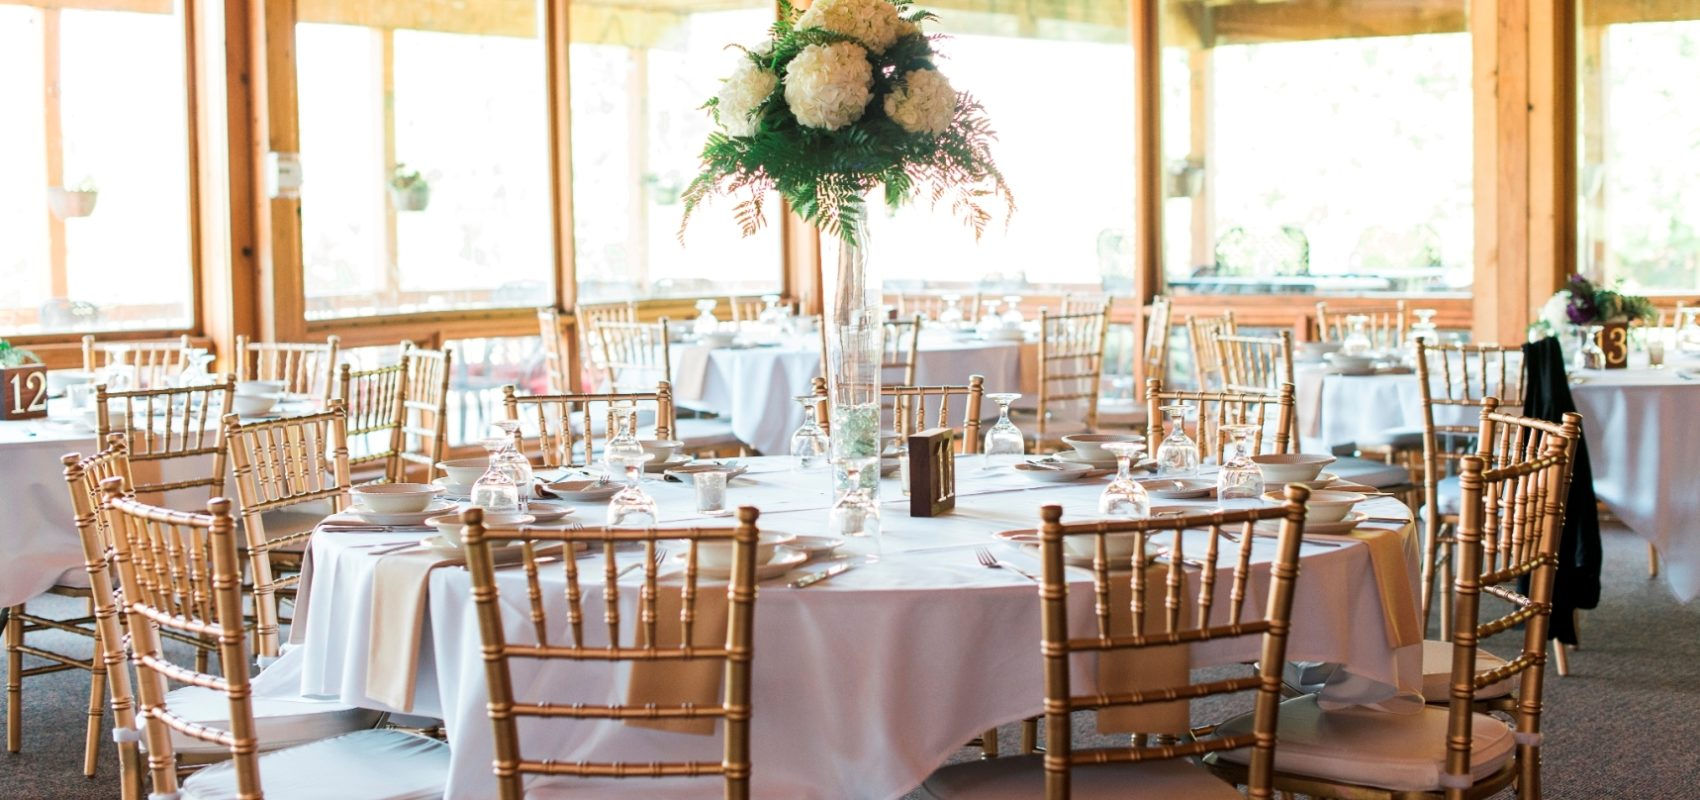 Wedding Halls Near Me.Wedding Venue Near Me The Myth Golf Course And Banquets